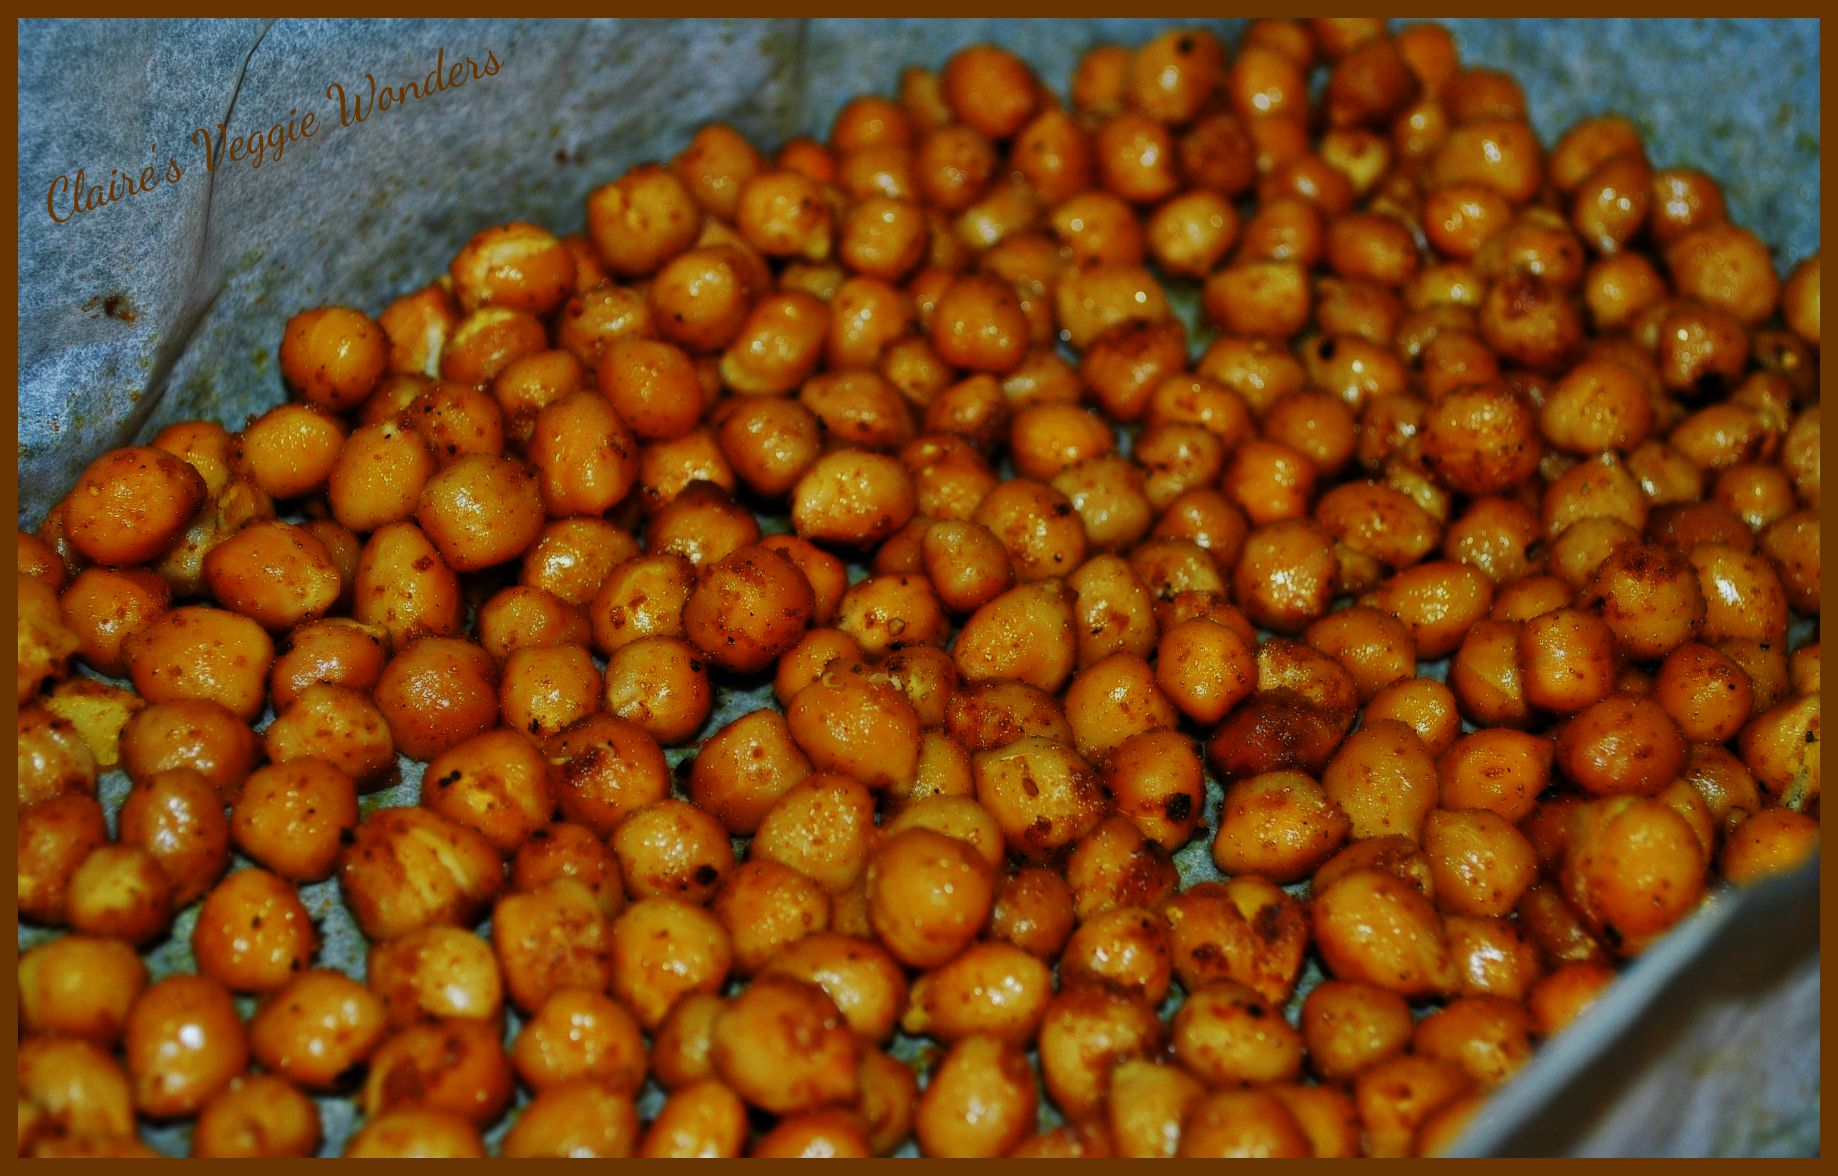 Meatless Monday - Spicy Oven Roasted Chickpeas - DrDietRight